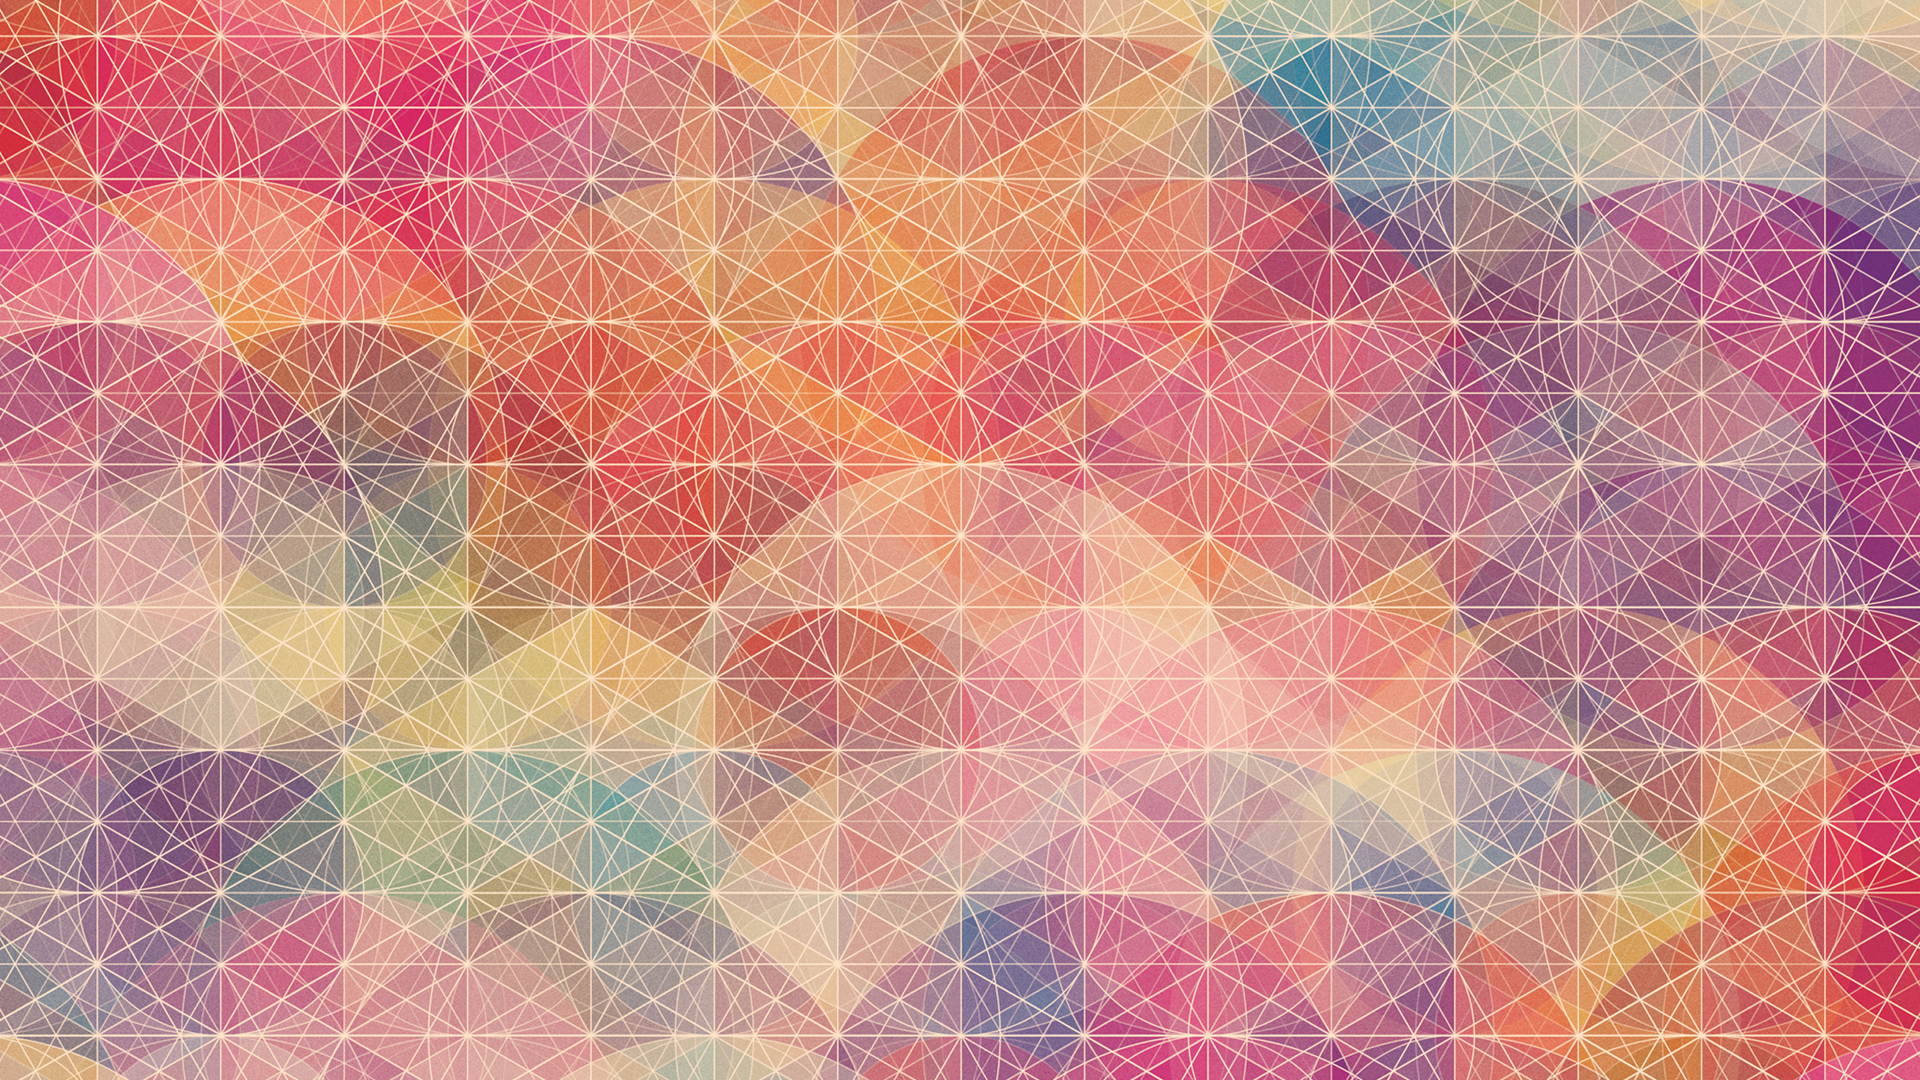 free geometric low poly backgrounds pack 1920x1080